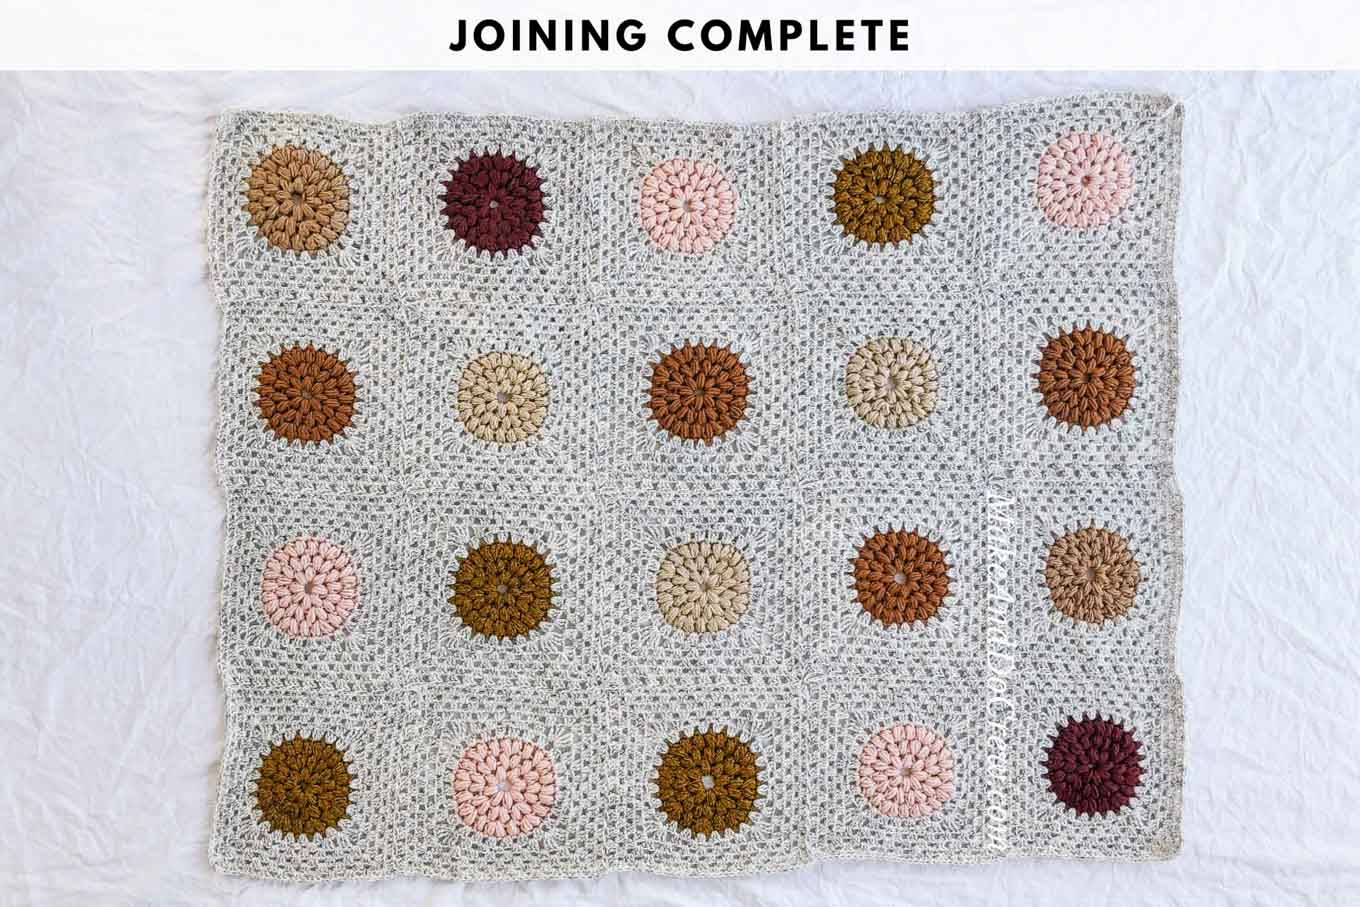 A crochet granny square blanket made from puff stitch circles.